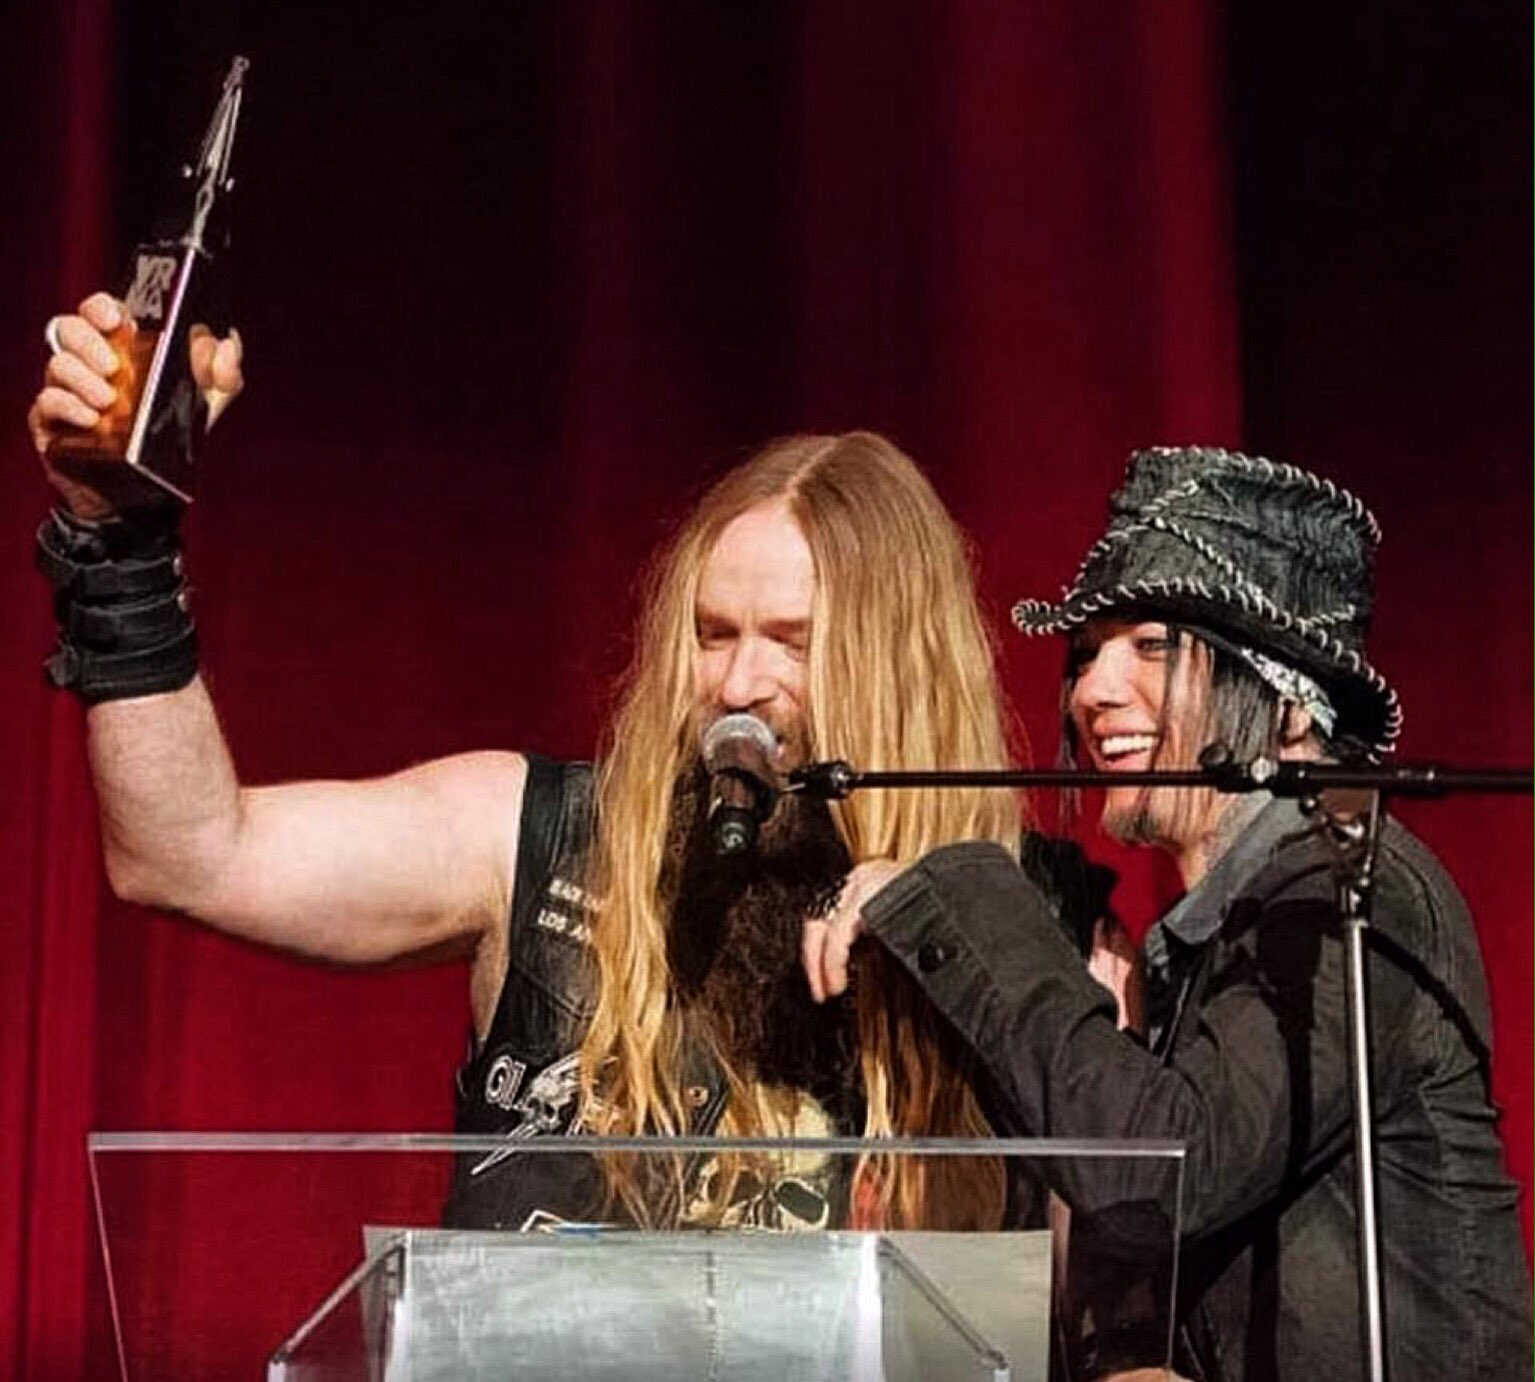 *Happy Birthday Zakk Wylde* Photo : Zakk Wylde & Dj ASHBA   Photo © Wayne Posner